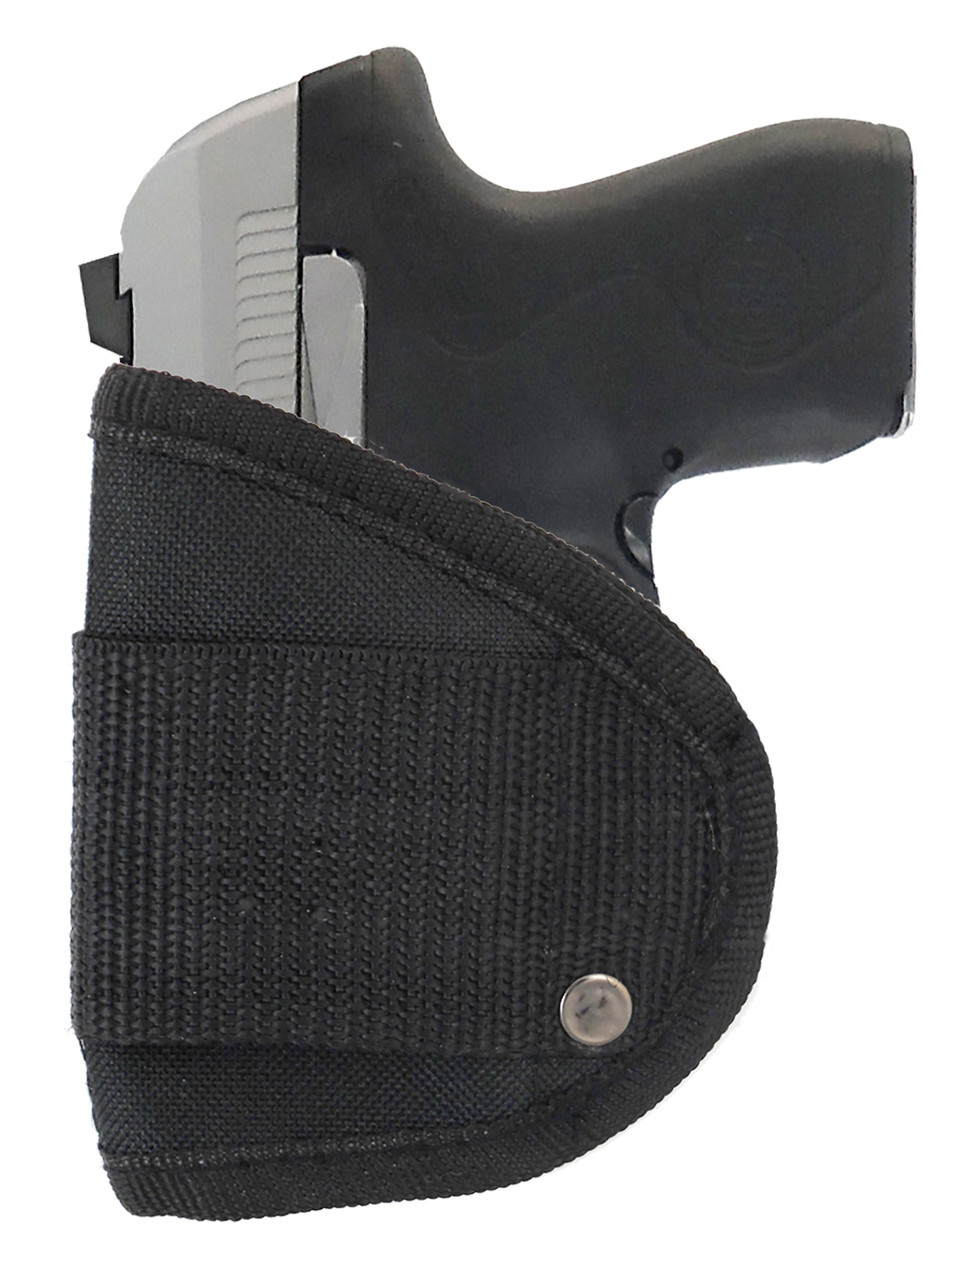 Inside Waistband Poly Sling Holster Fits Beretta Pico 380 IWB (S1)